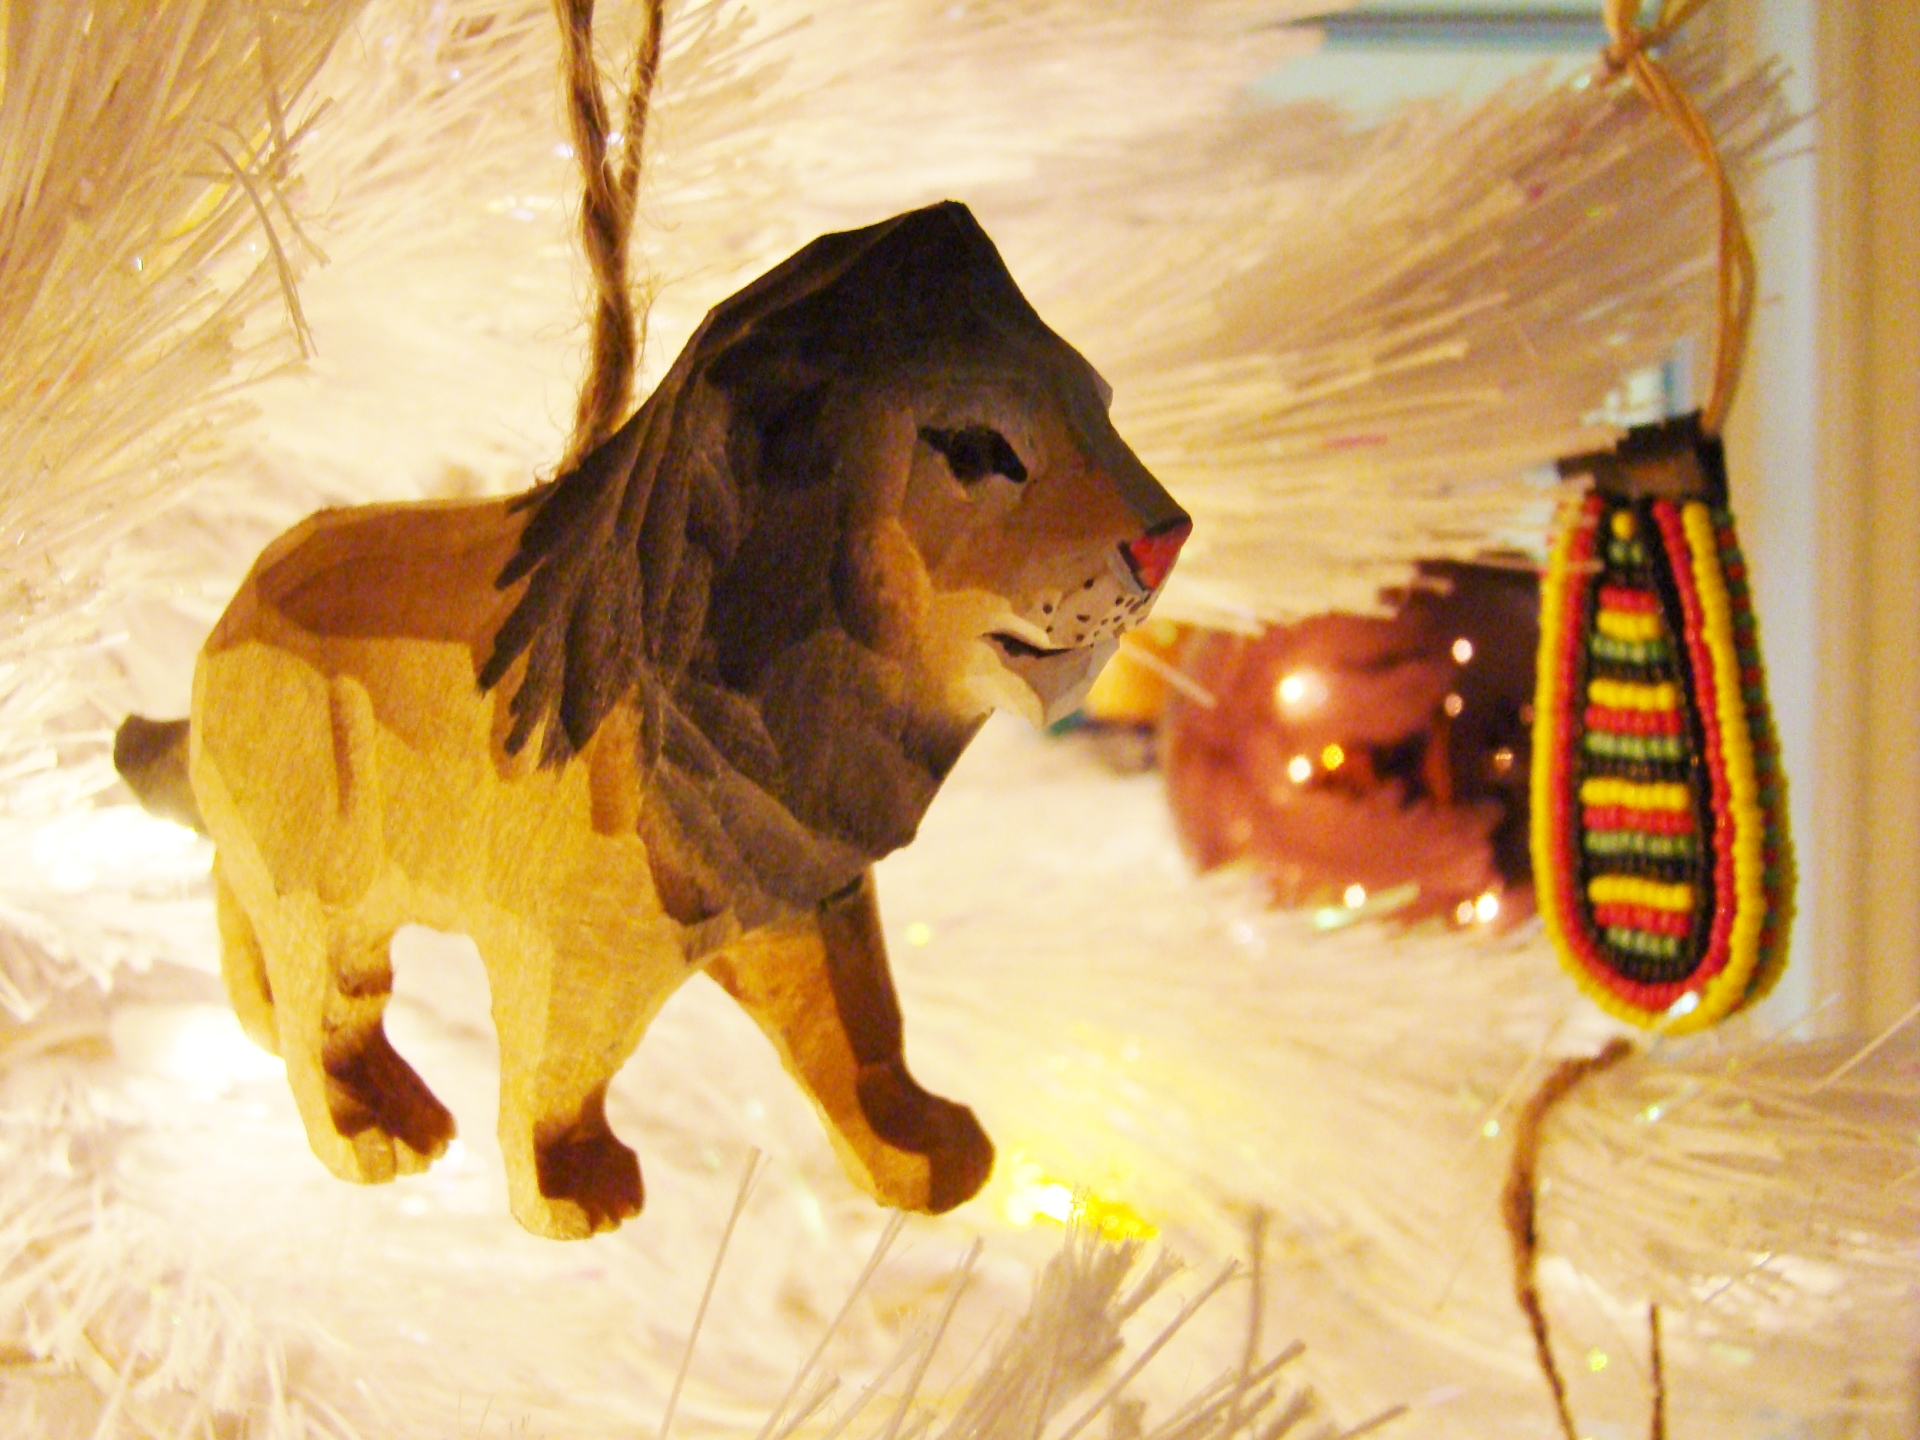 Fiorito Interior Design, interior design, Homes For The Holidays, African, holiday tree, carved wooden lion ornament, beaded ornament